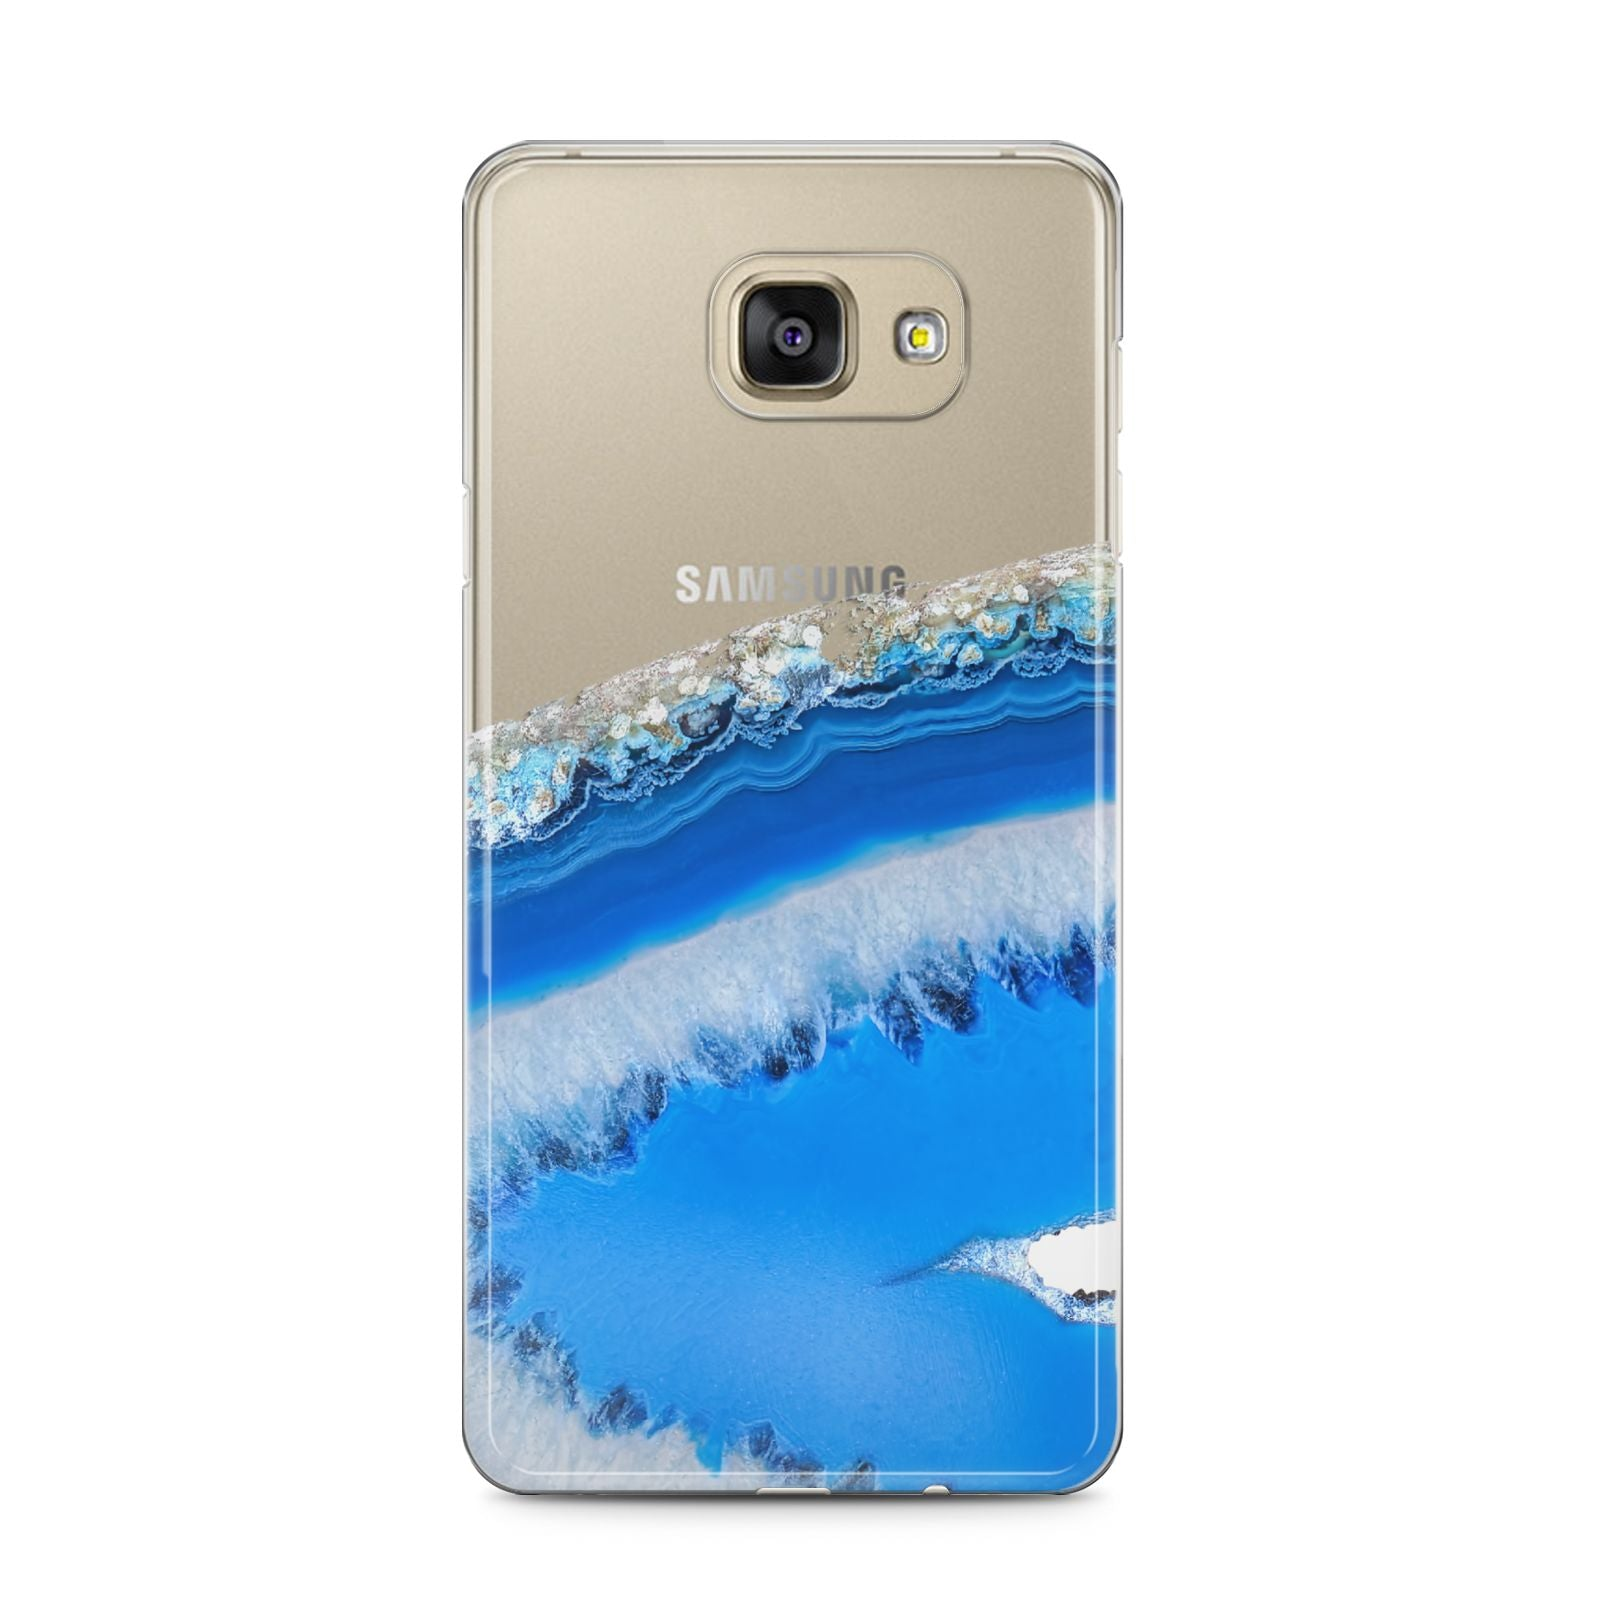 Agate Blue Samsung Galaxy A5 2016 Case on gold phone